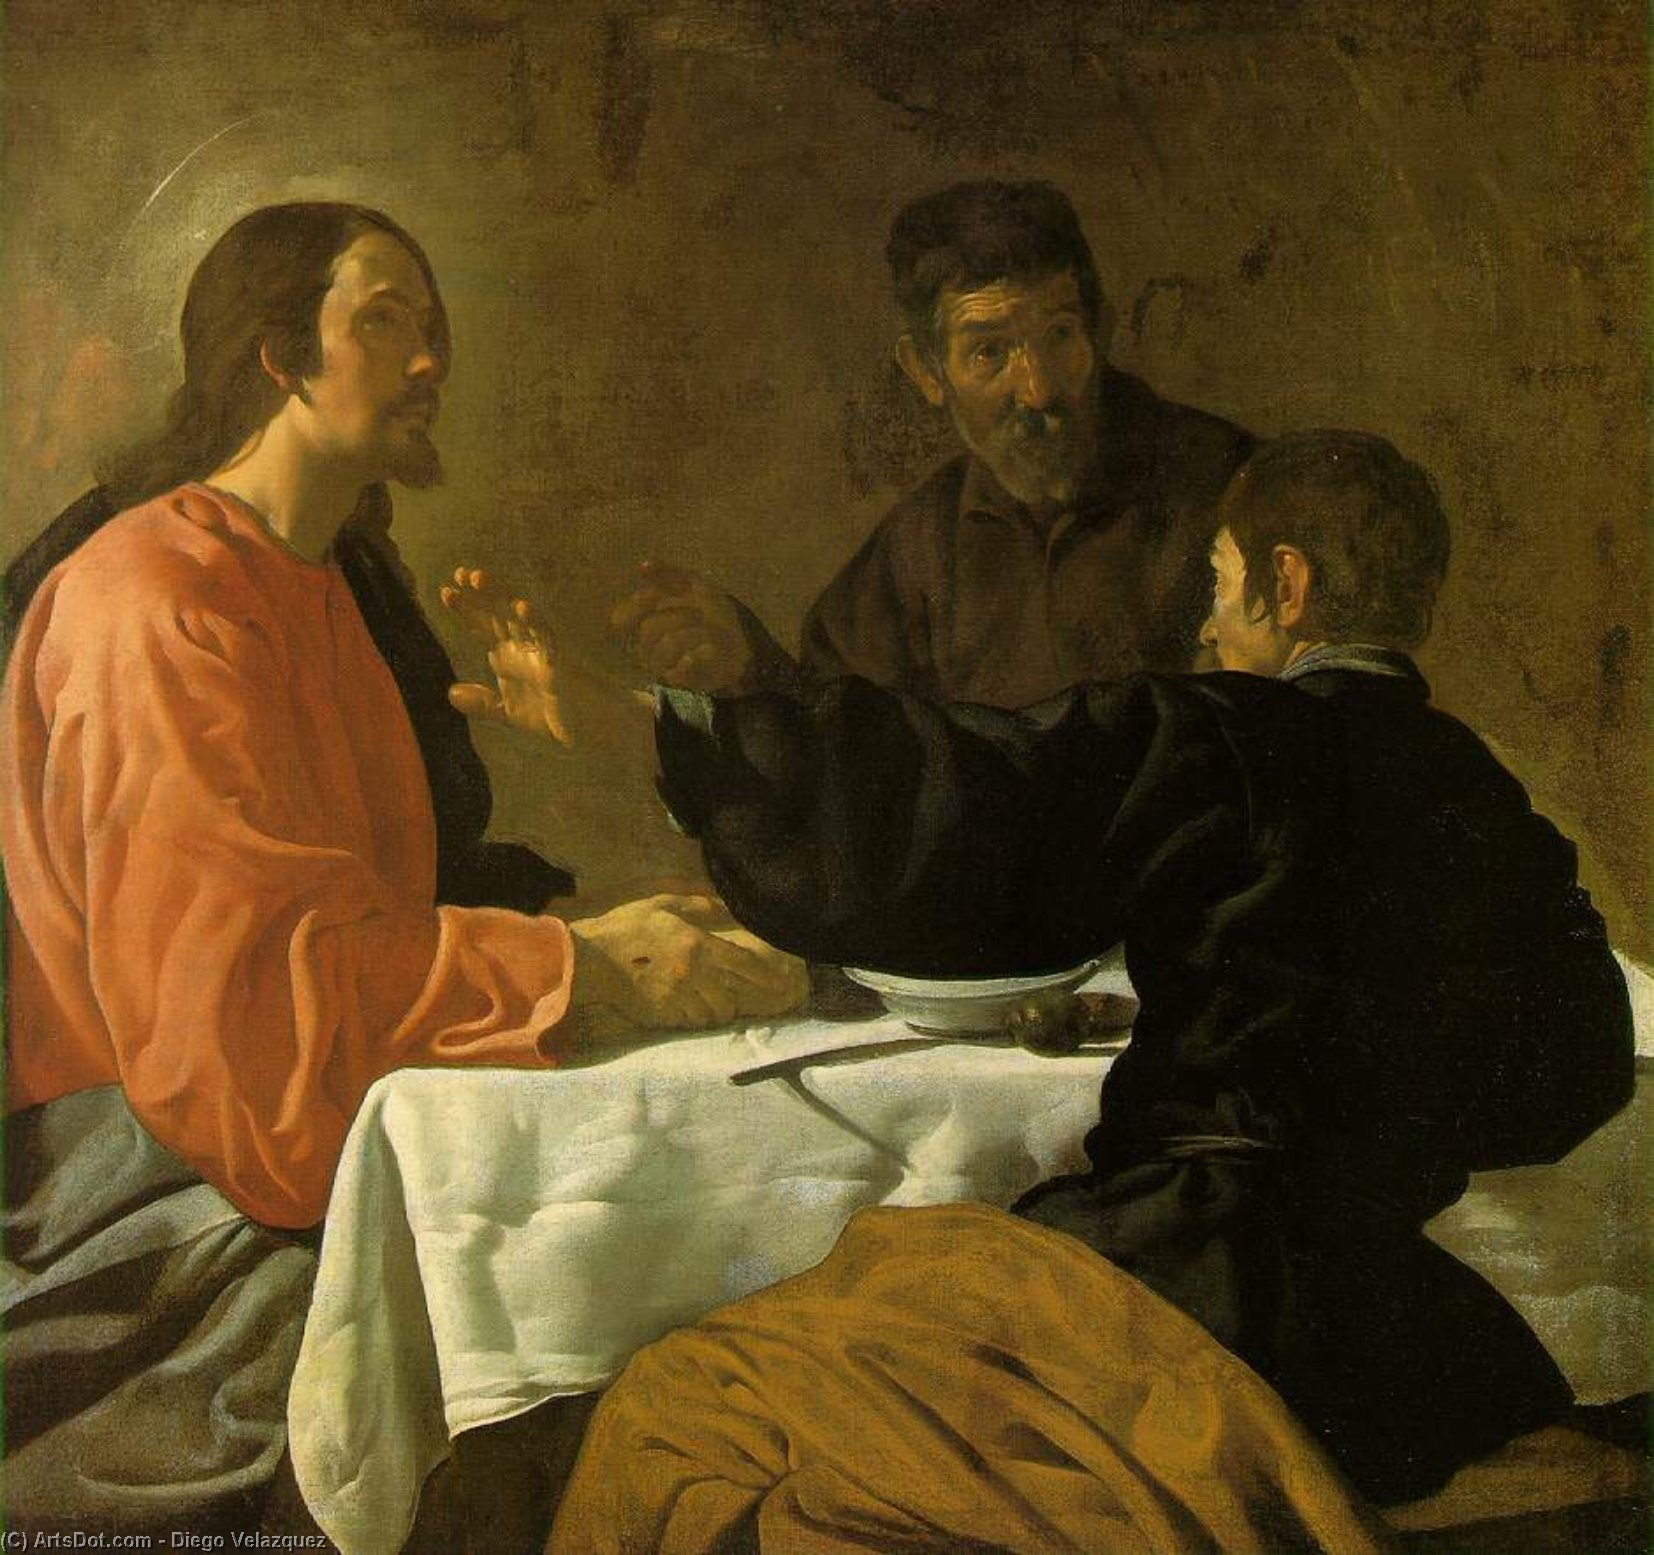 The Supper at Emmaus, Oil On Canvas by Diego Velazquez (1599-1660, Spain)